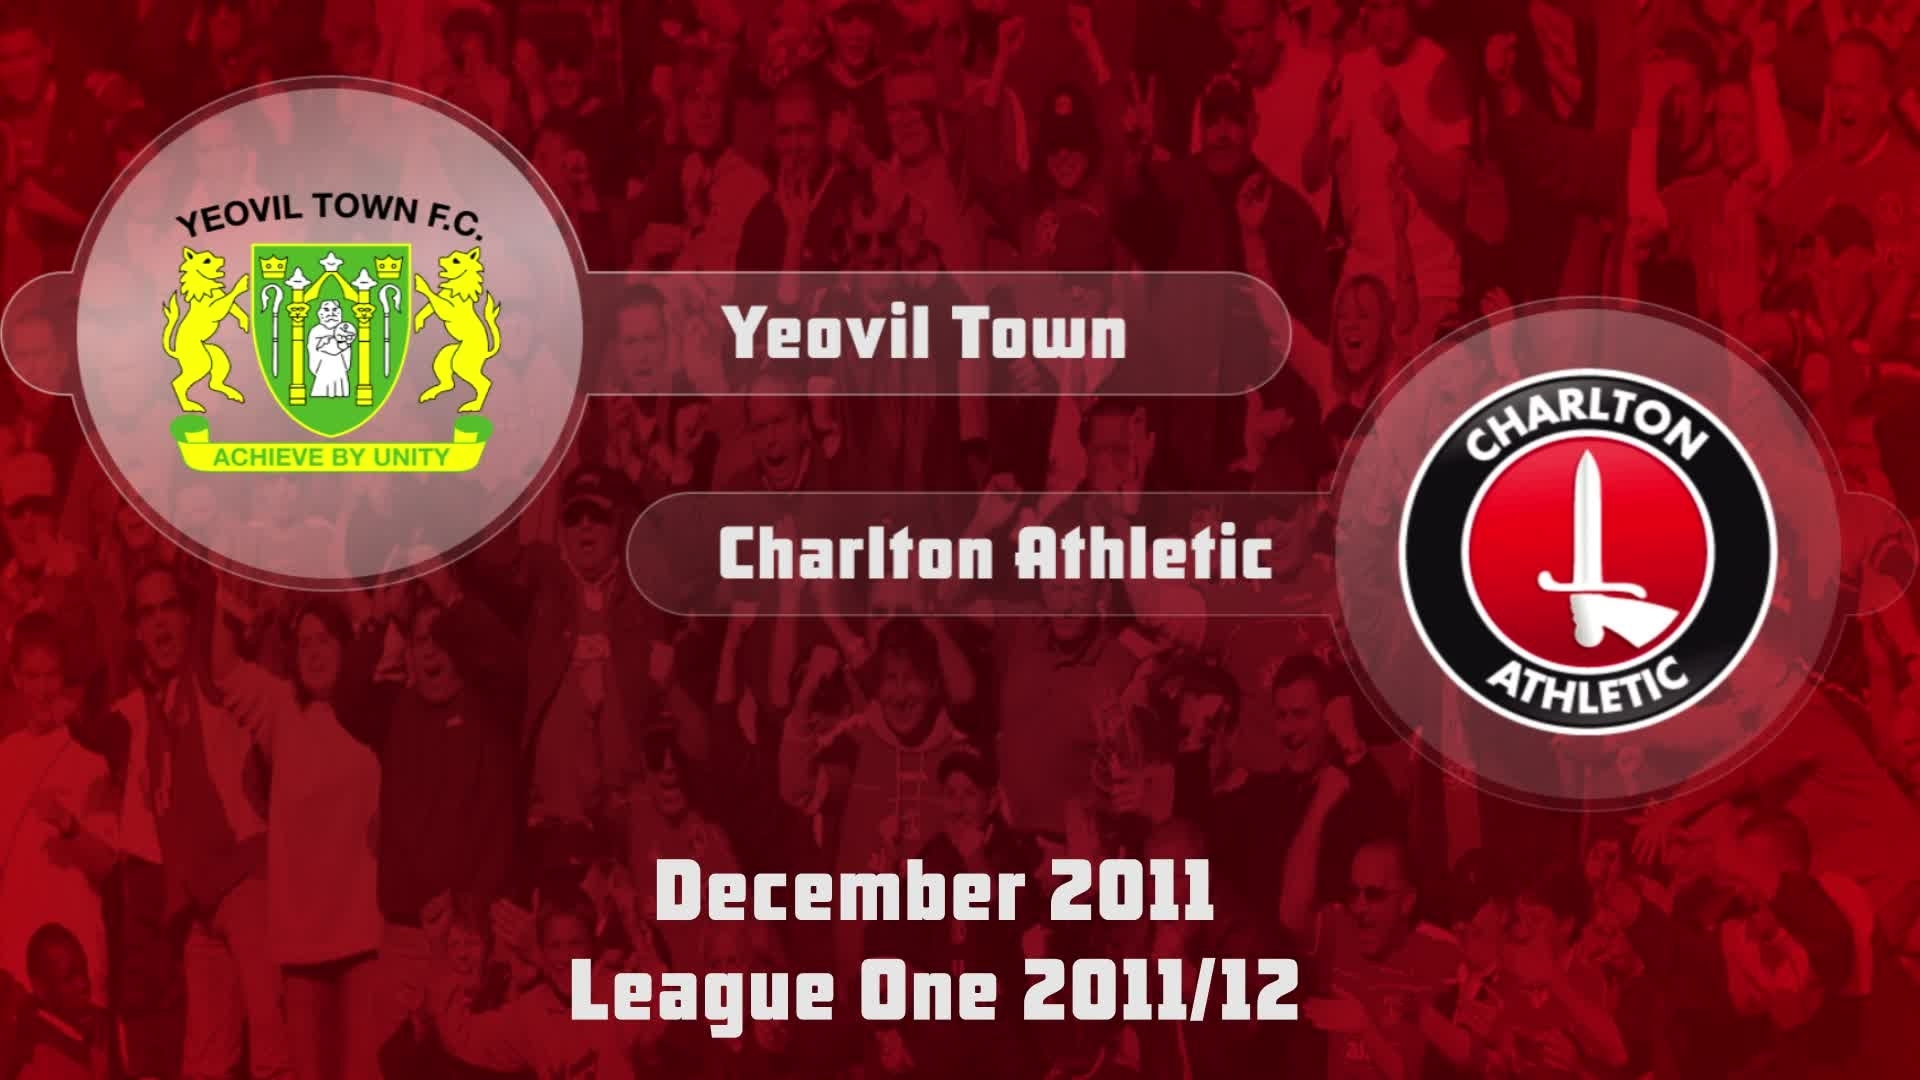 27 HIGHLIGHTS | Yeovil 2 Charlton 3 (Dec 2011)